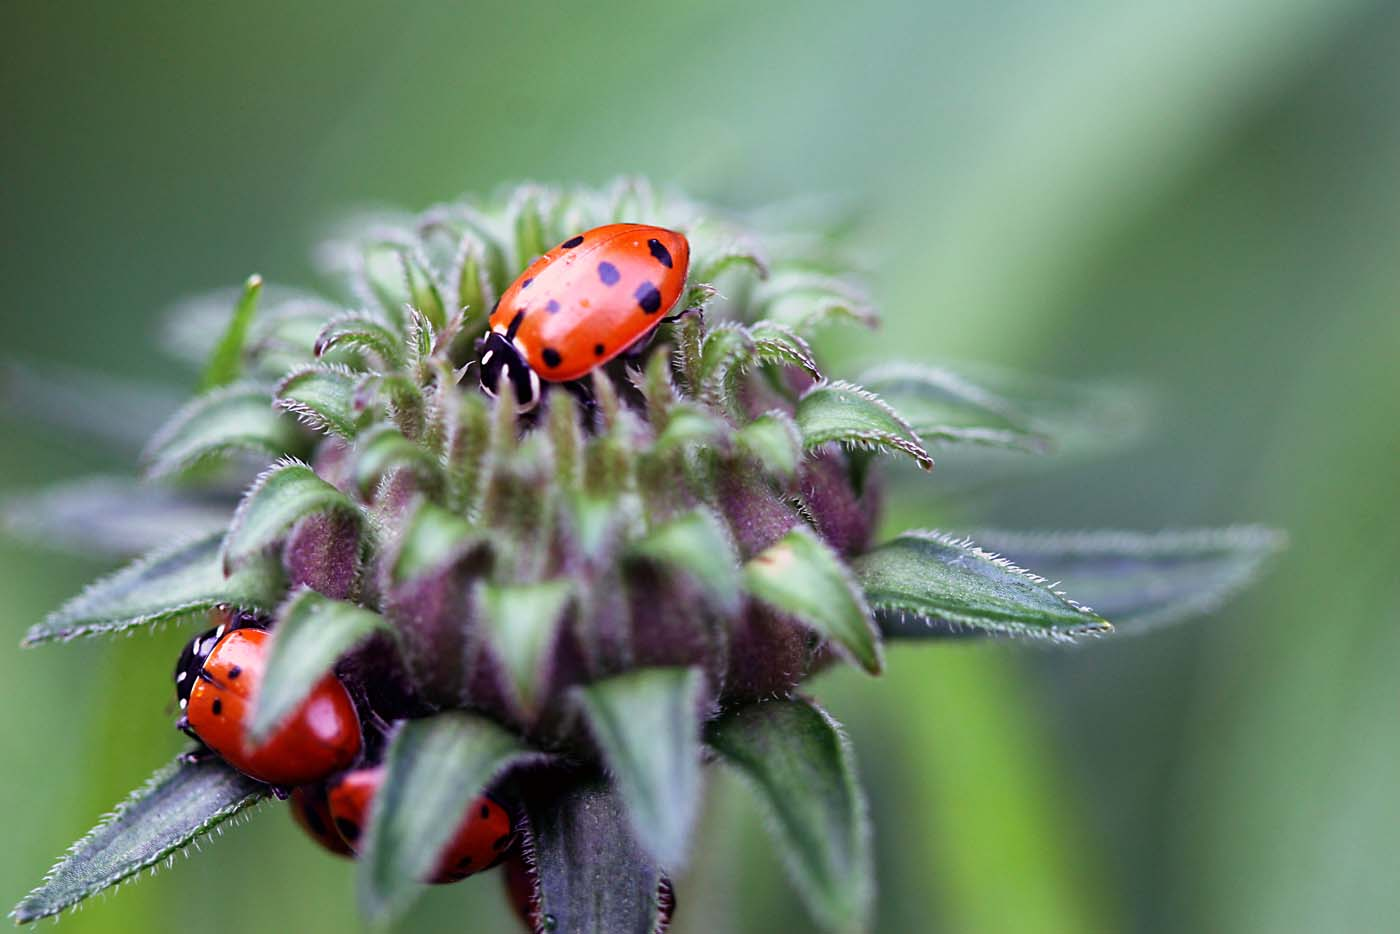 Ladybugs purchased online hang out on a flower in a Columbia, Md., garden. (Credit: Judah Kelber)